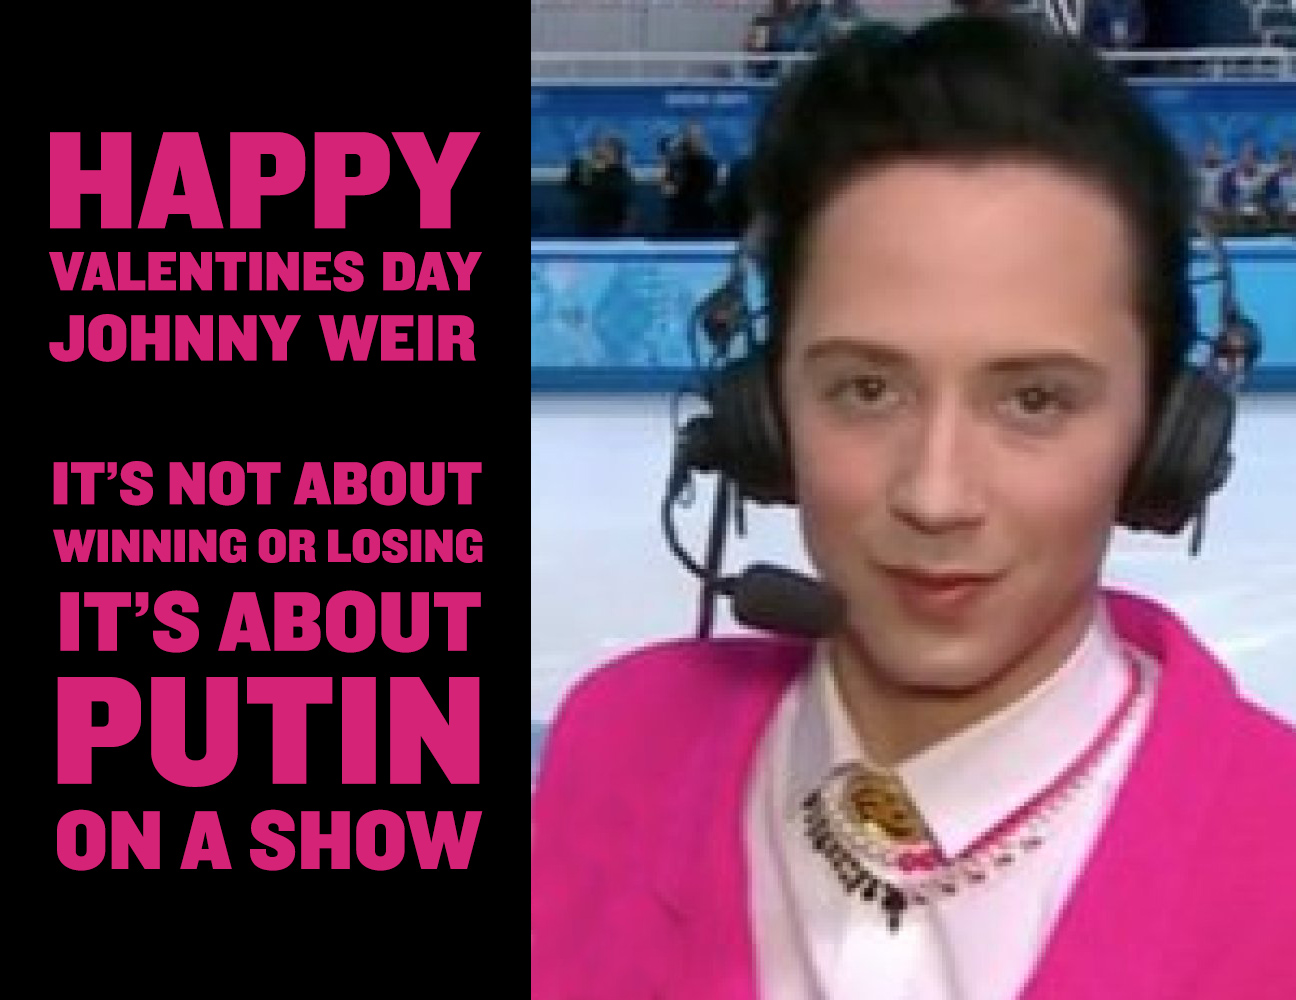 JOHNNY-WEIR-facebook